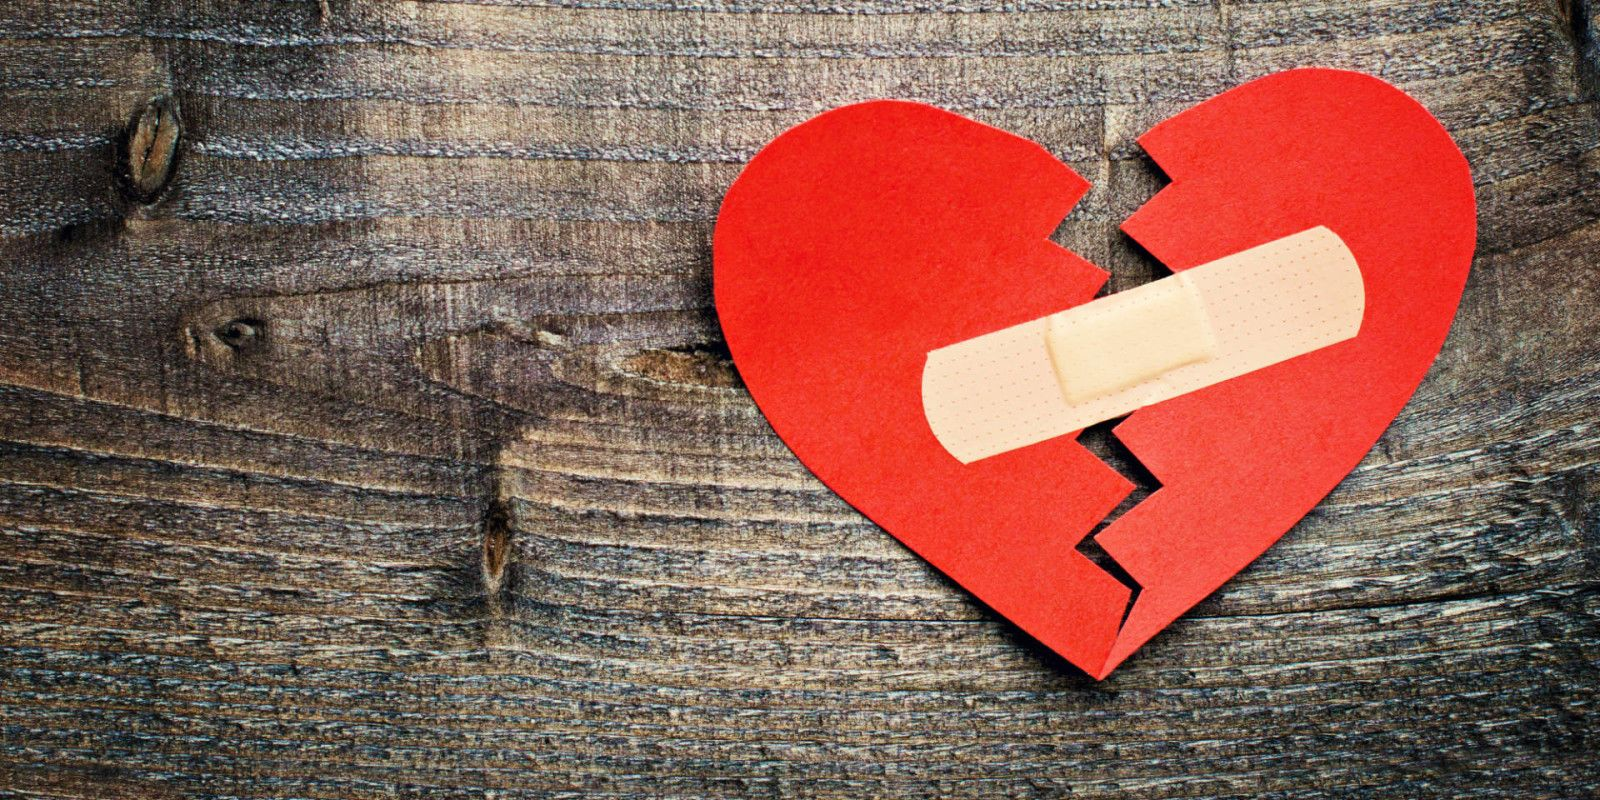 5 WAYS TO MEND A BROKEN HEART It's undoubtedly the worst occurrence of your life when it happens. Here are five tips to help mend a broken heart